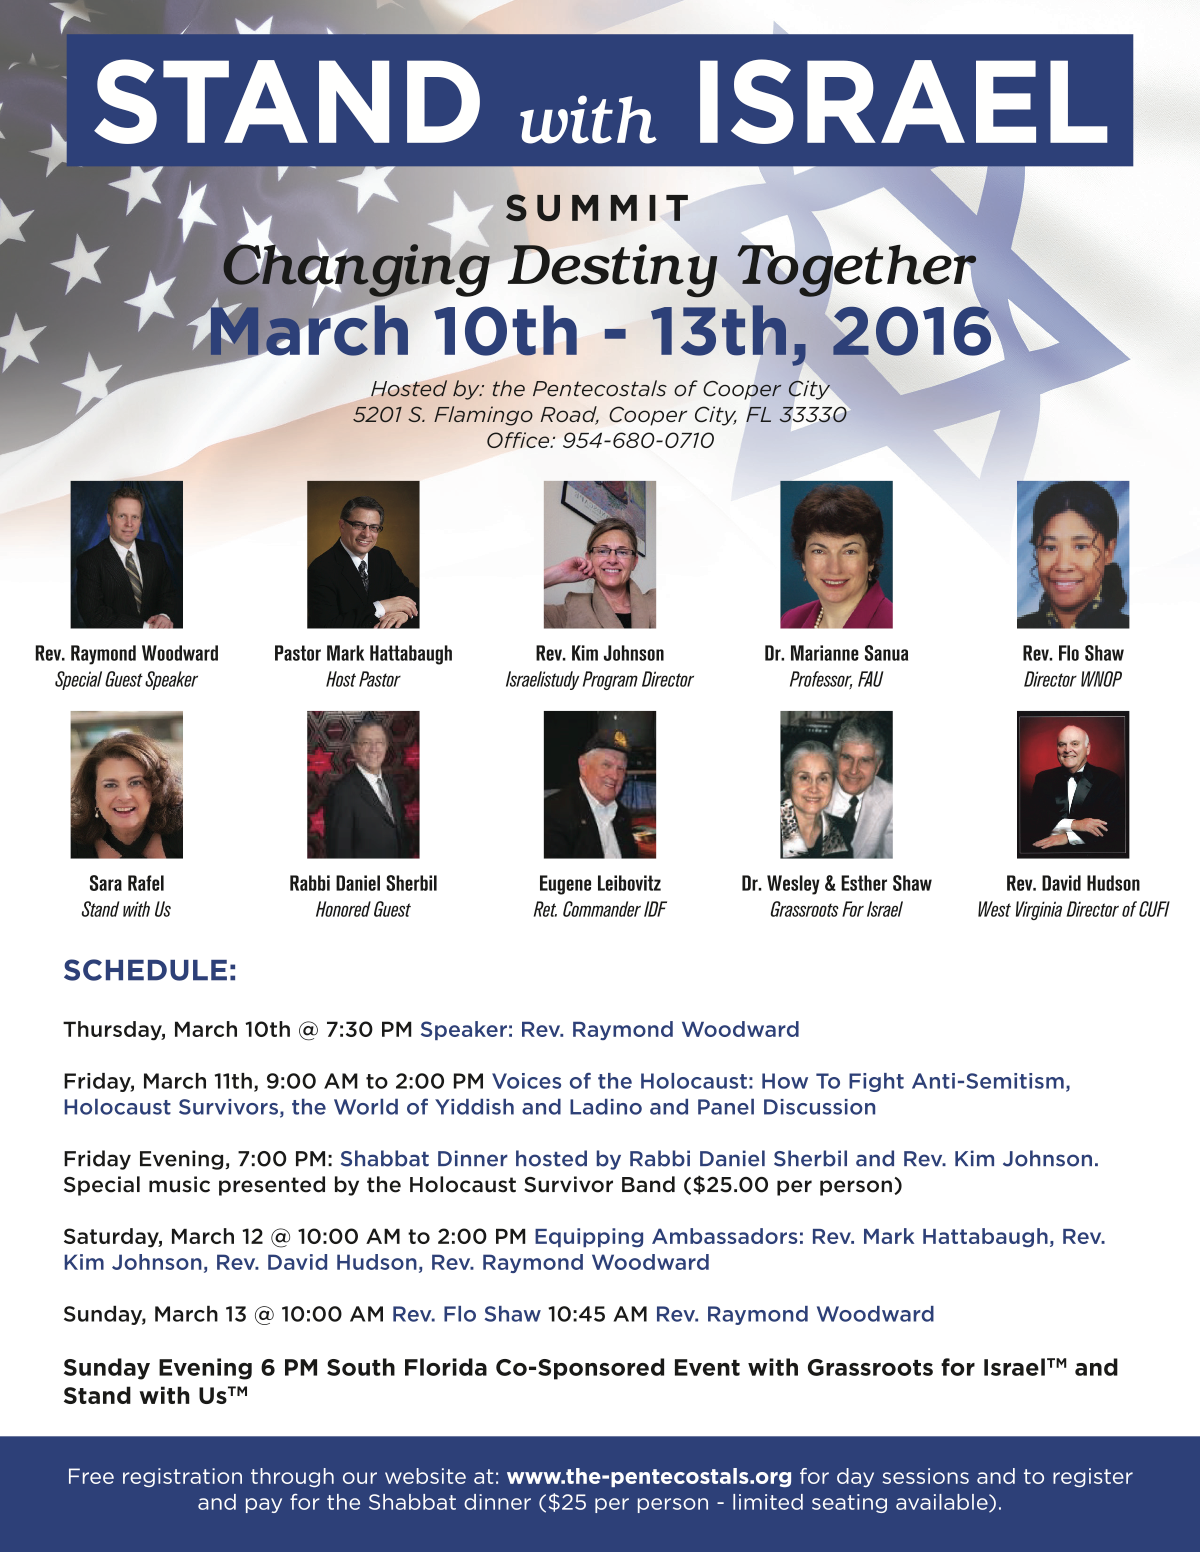 Flyer for our Stand With Israel Summit